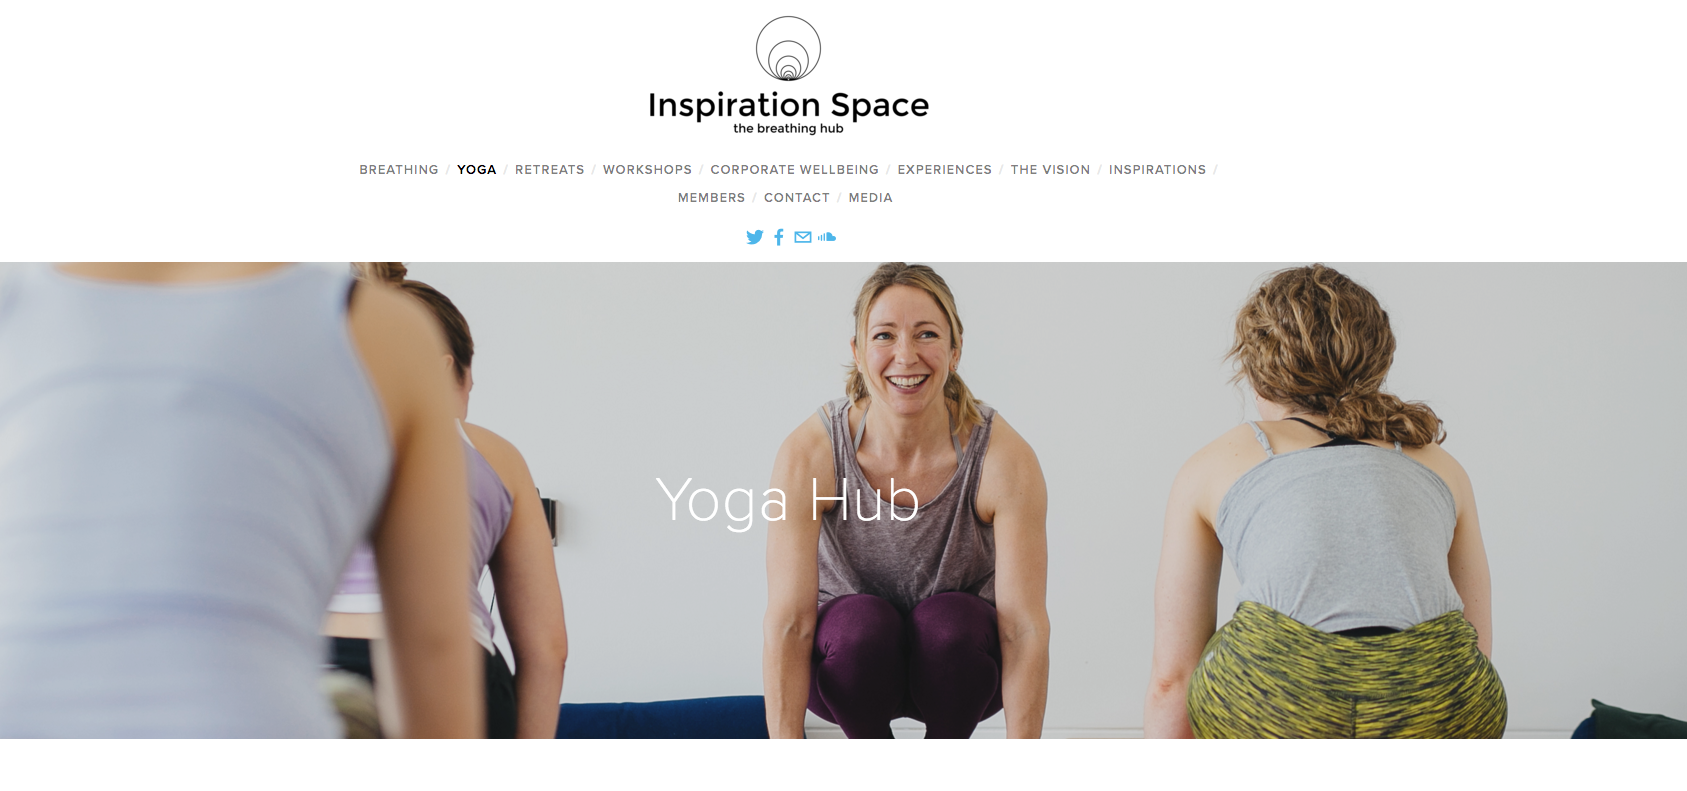 The new Inspiration Space website